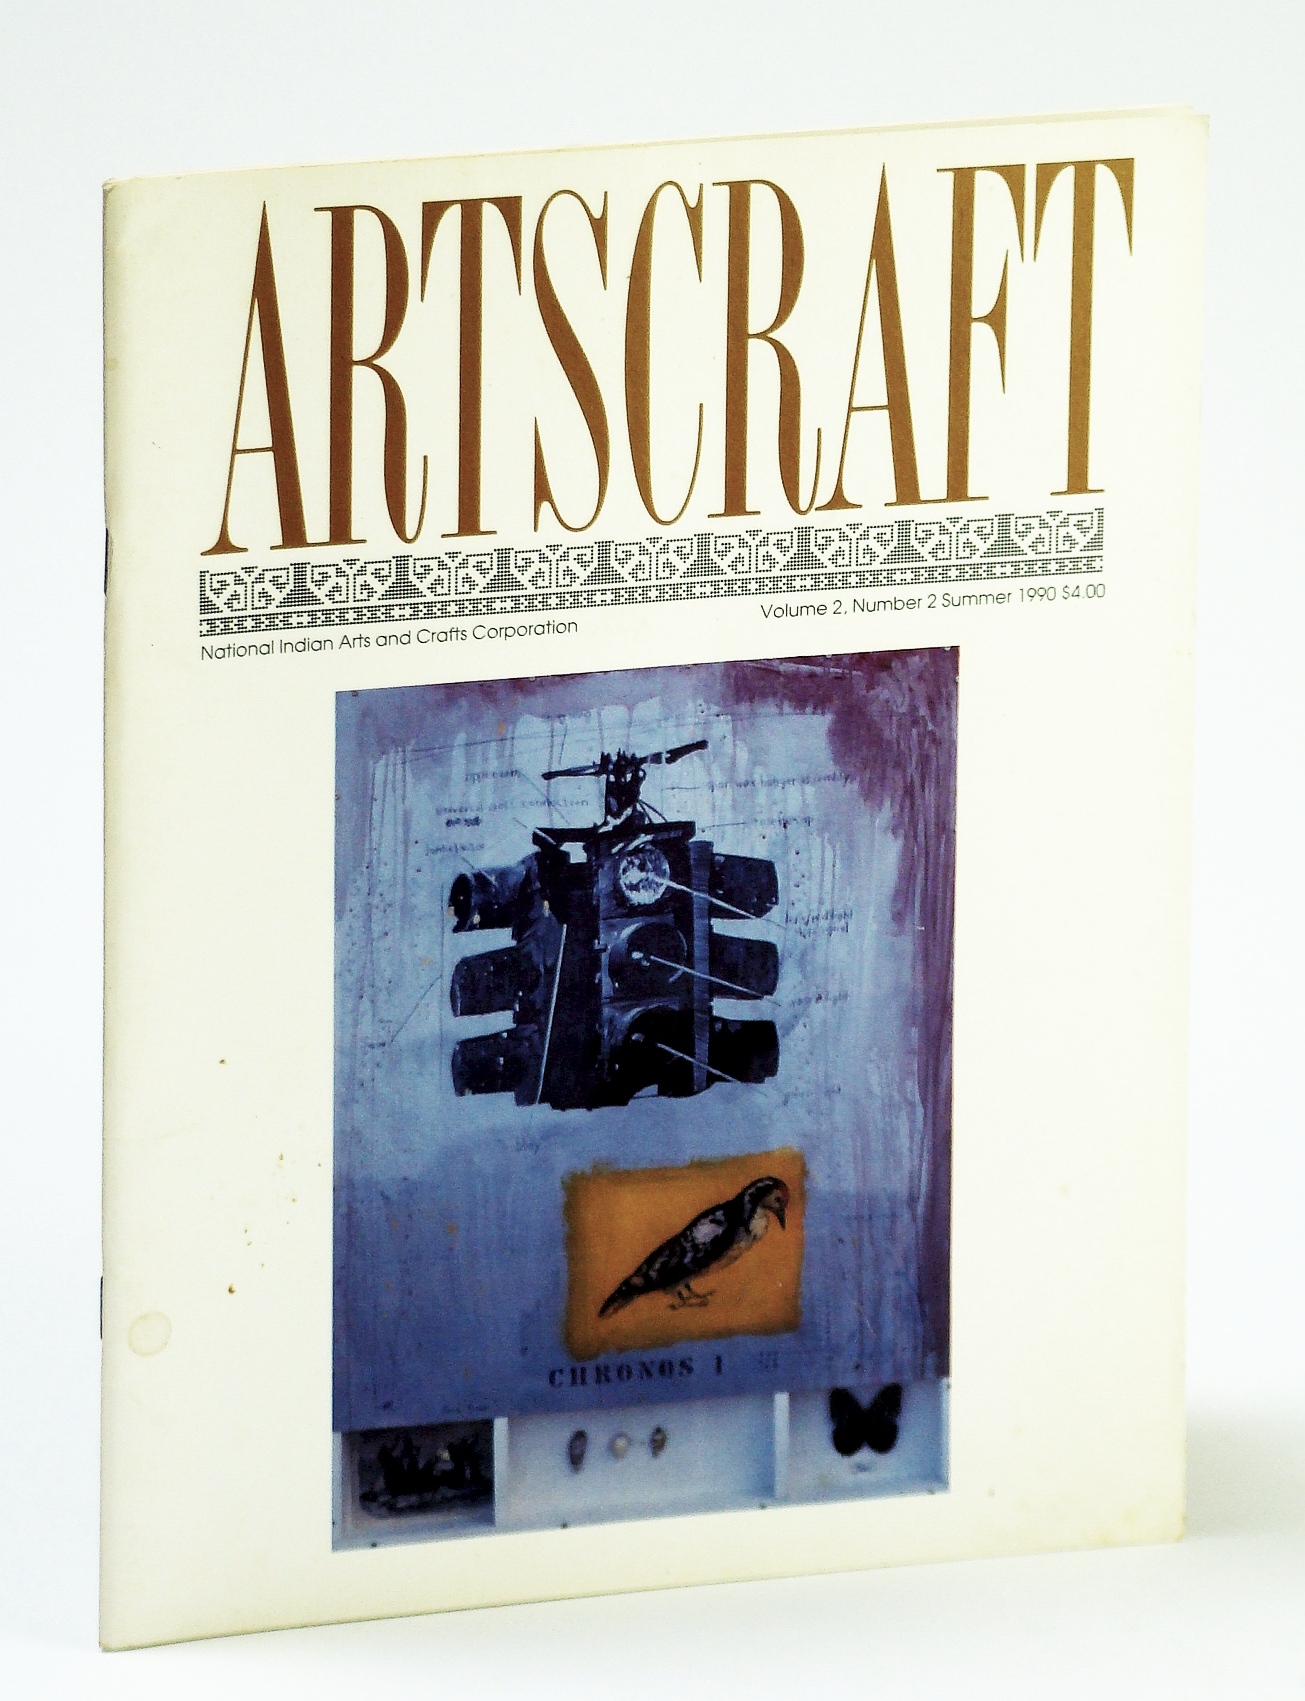 Image for Artscraft Magazine, Volume 2, Number 2, Summer 1990: Carl Beam's Columbus Project